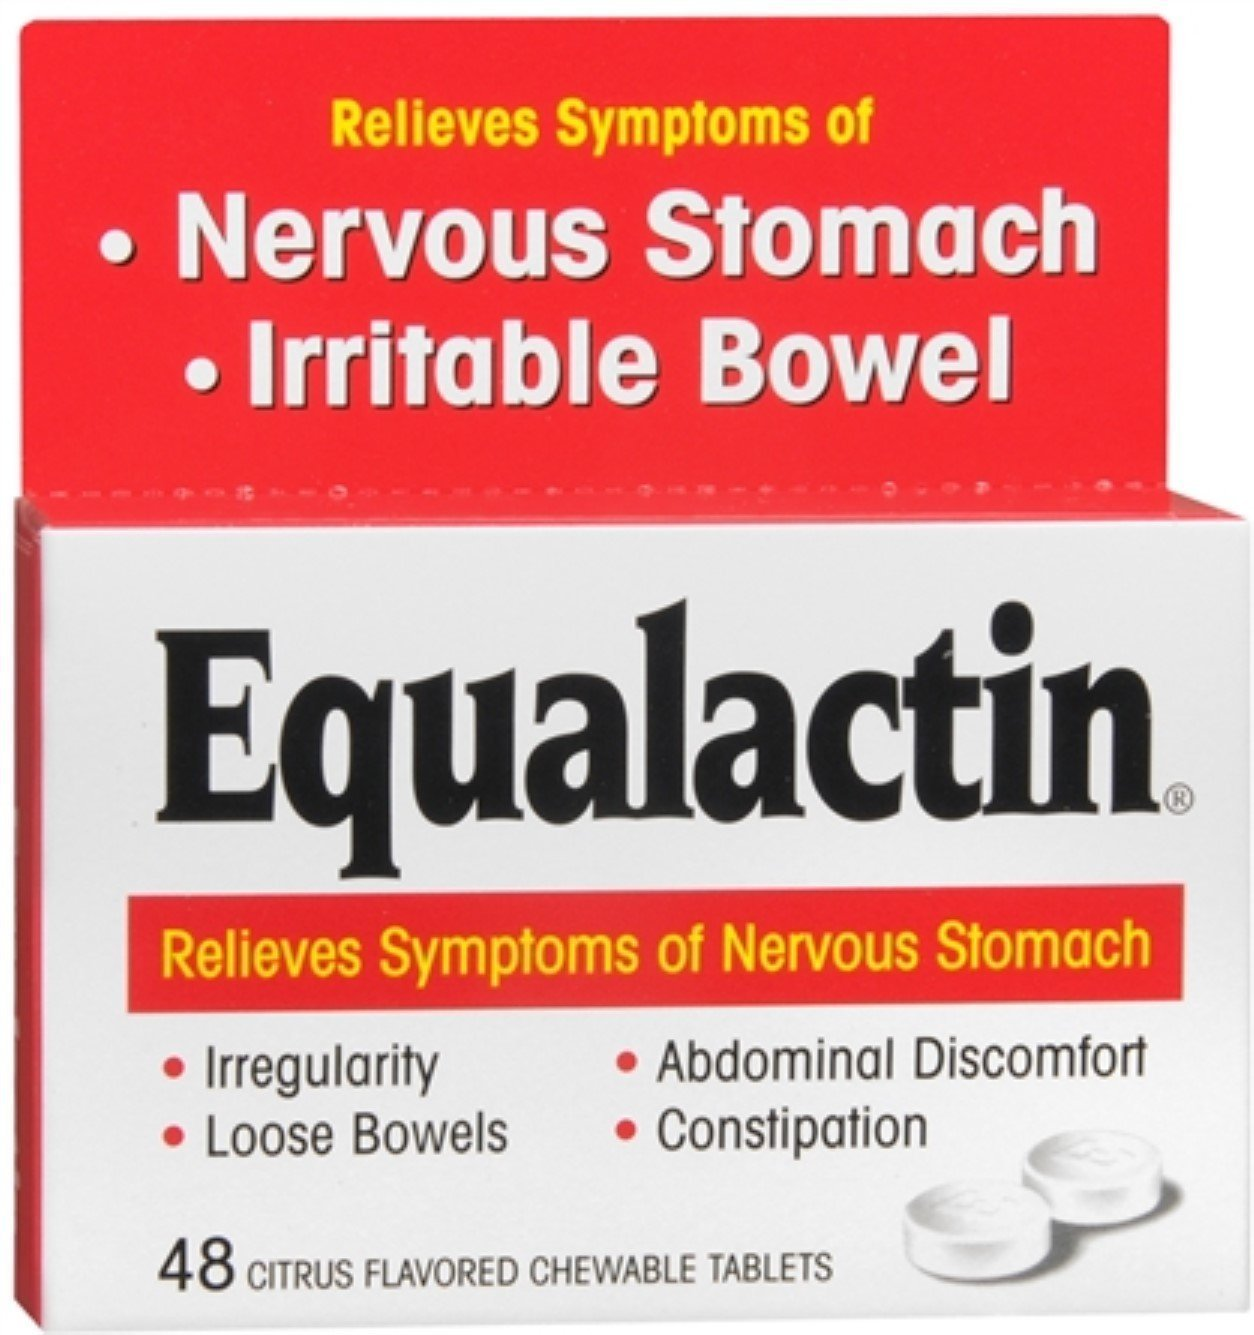 Equalactin Chewable Tablets 48 Tablets (Pack of 9) by Equalactin